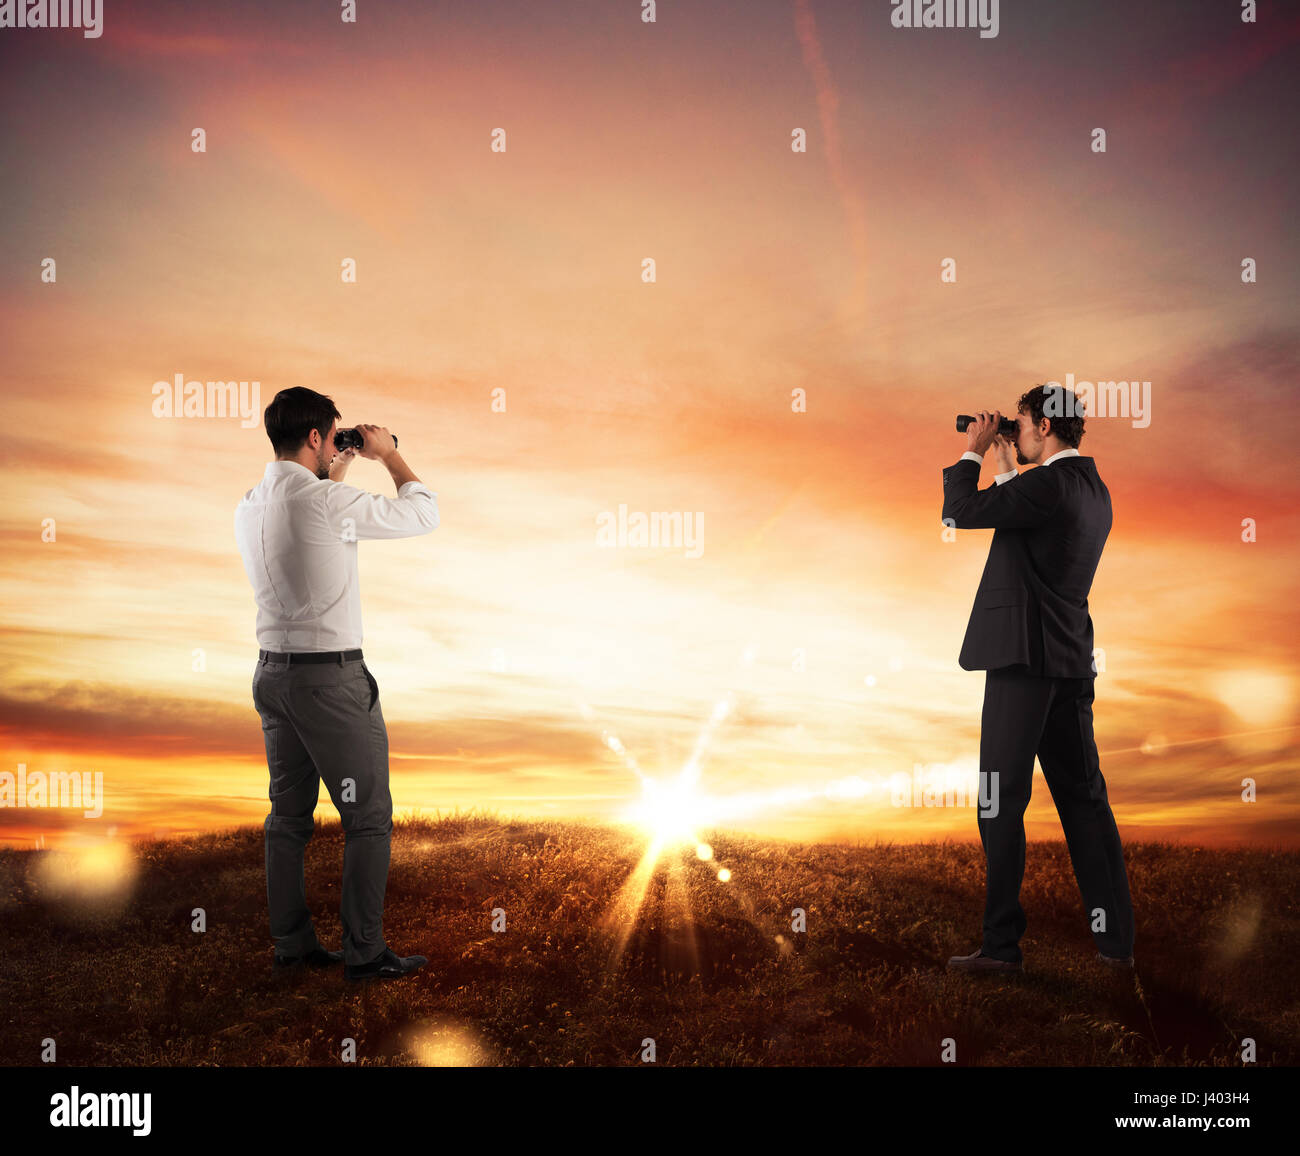 Aspiration and desire to succeed in business - Stock Image